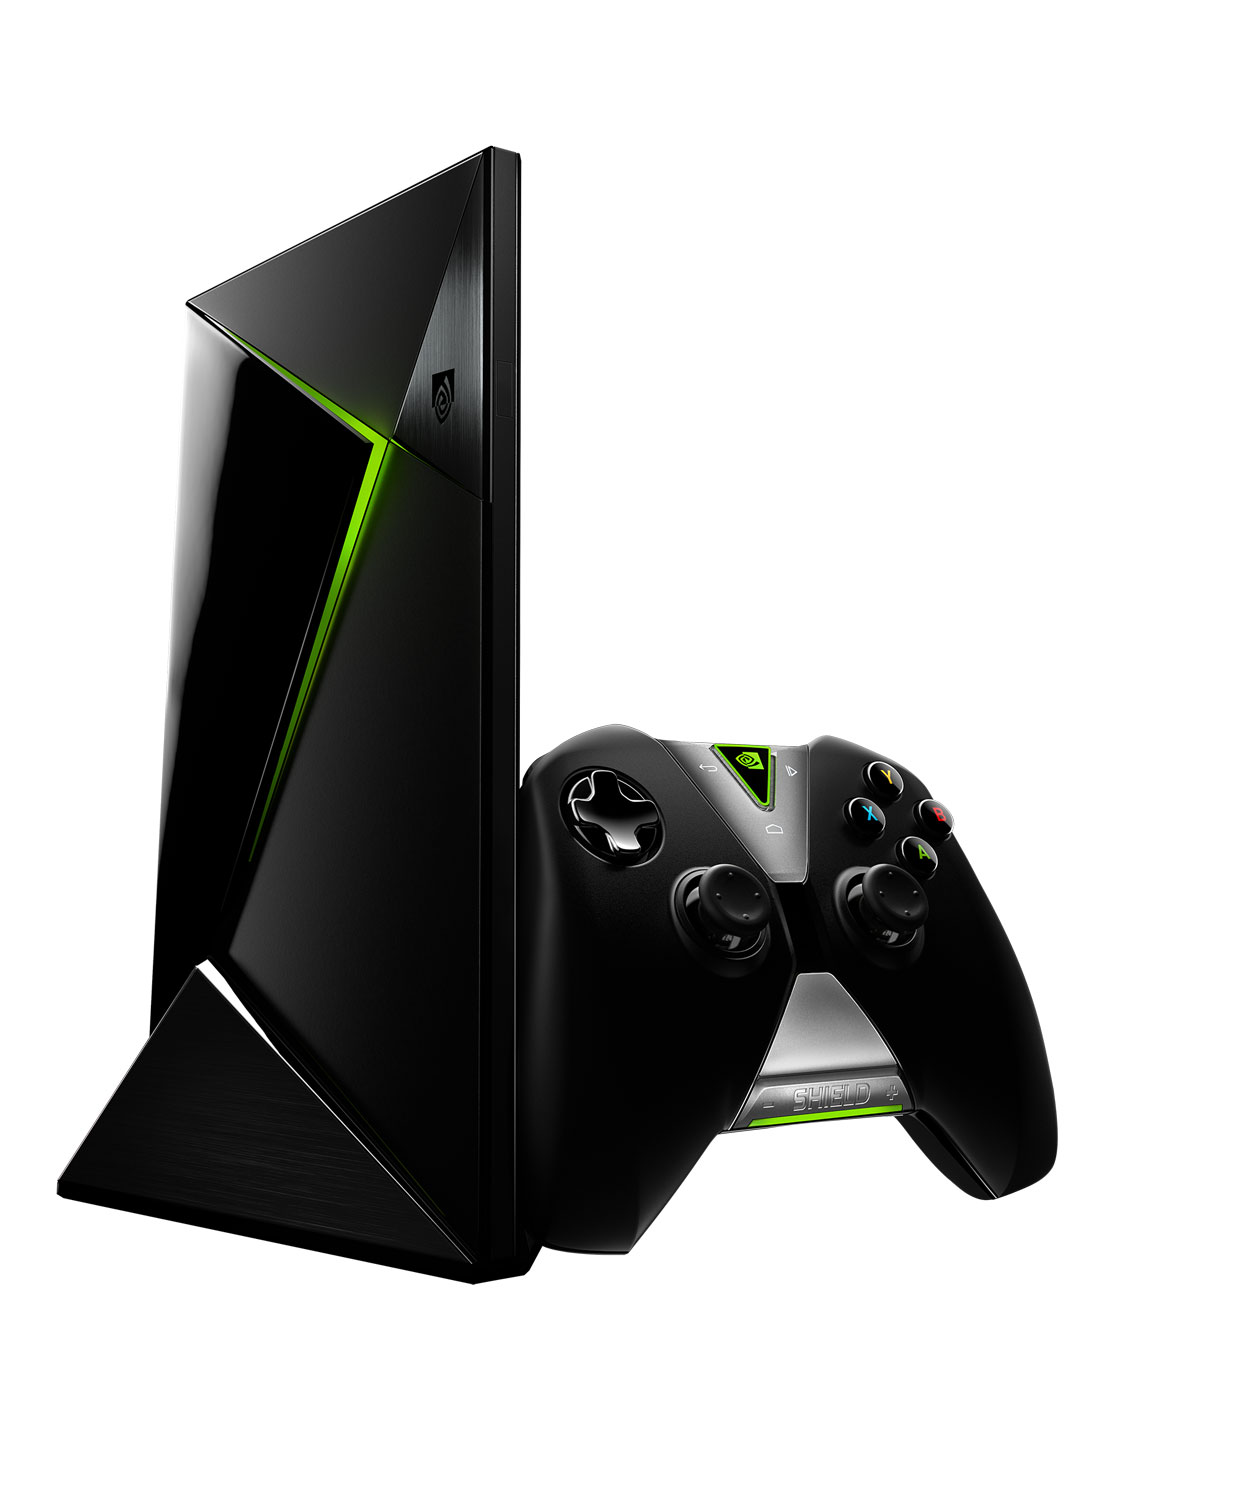 jeux vid o nvidia lance la shield la premi re console. Black Bedroom Furniture Sets. Home Design Ideas